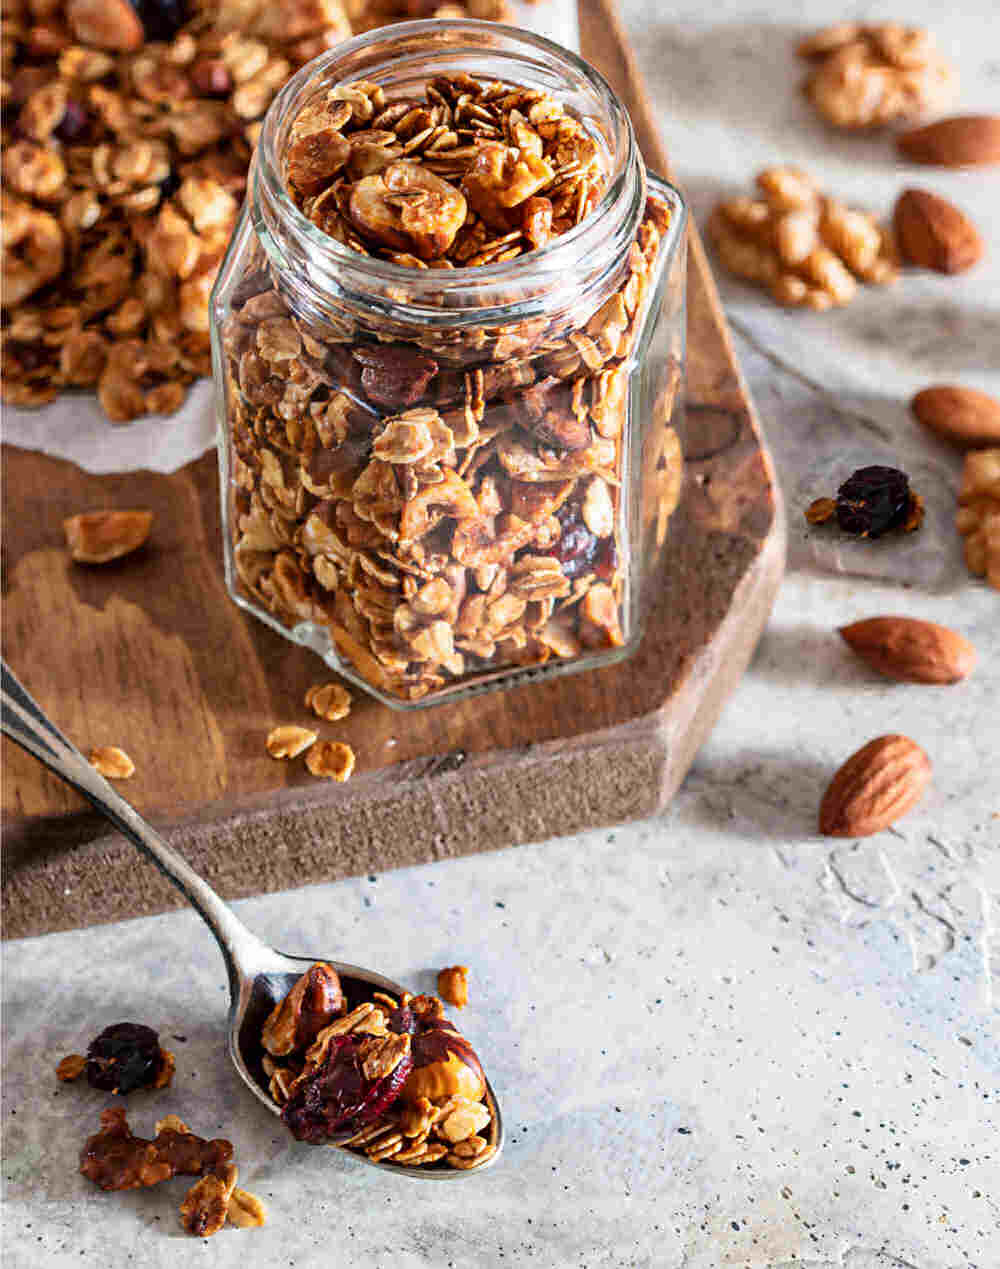 Homemade granola in a jar with spoon, nuts and dried fruit.